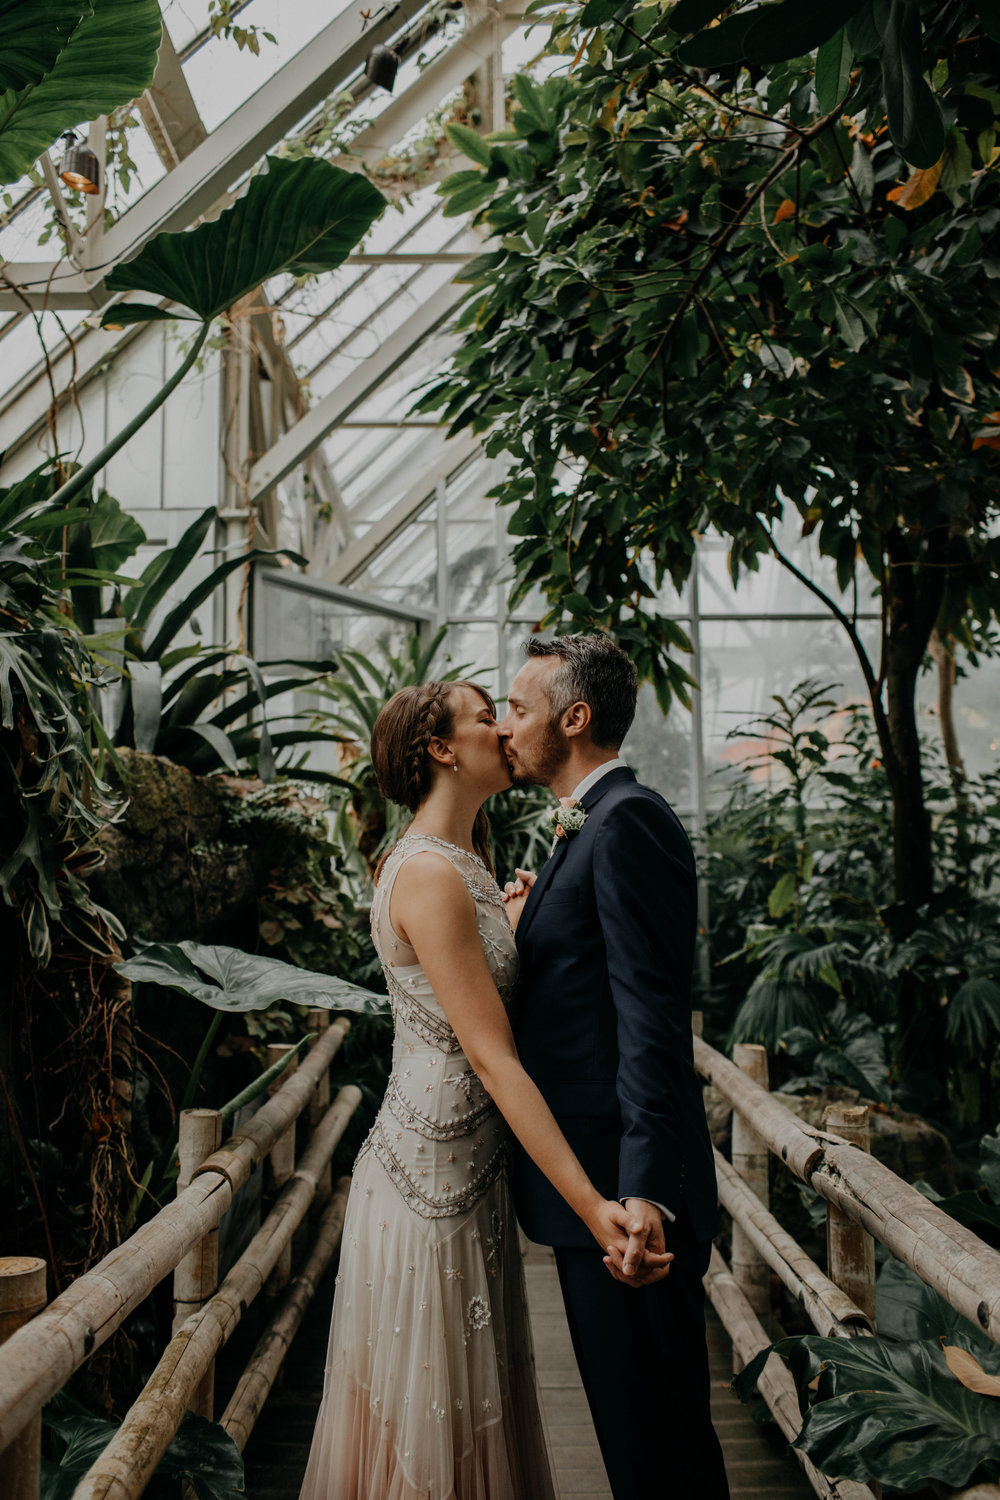 franklin park conservatory wedding columbus ohio wedding photographer grace e jones photography125.jpg